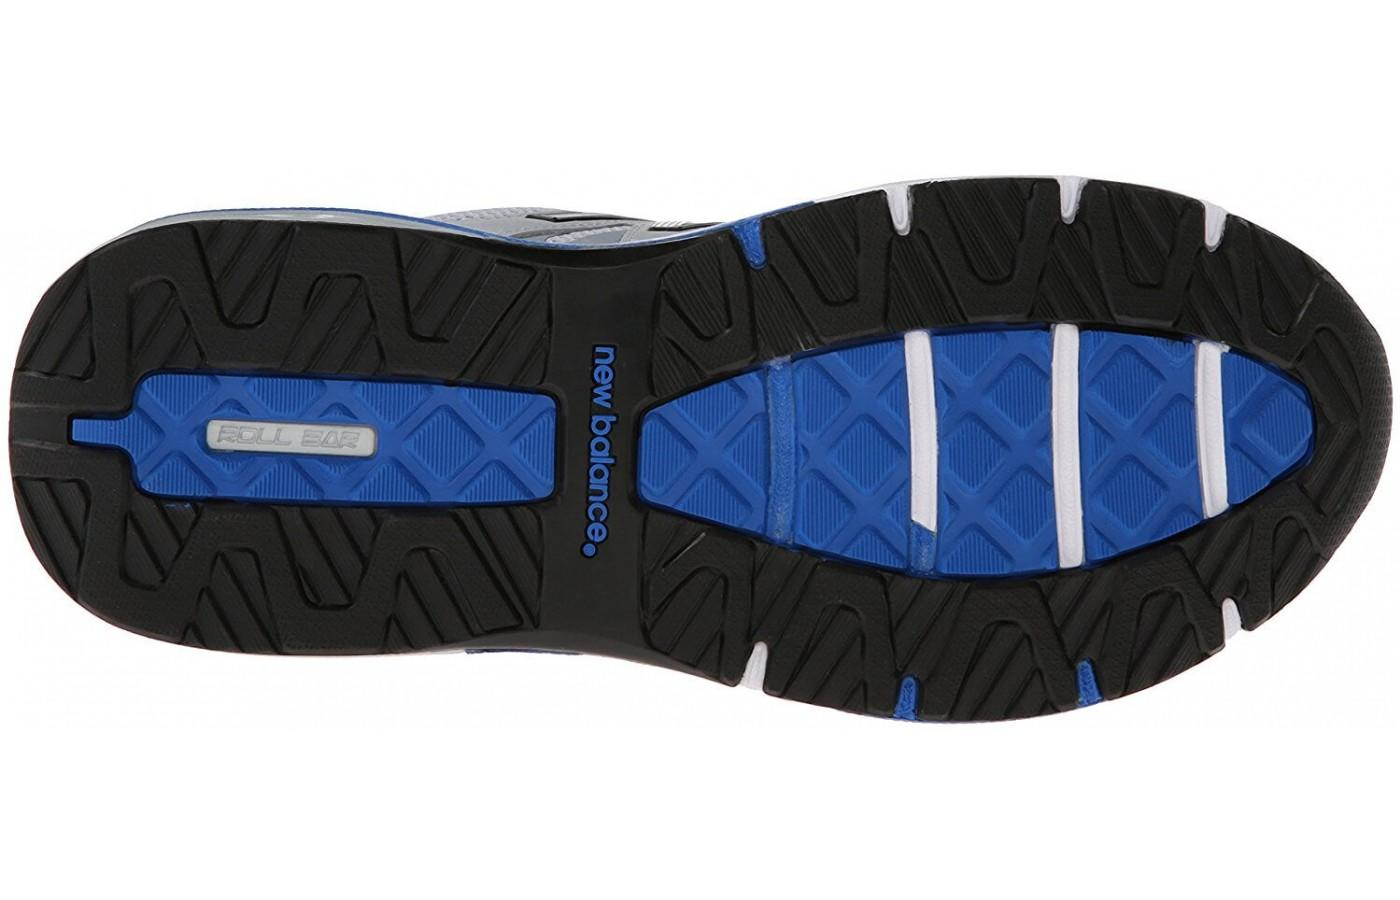 the outsole of the New Balance 1540 v2 uses blown rubber for traction and NDurance rubber for durability